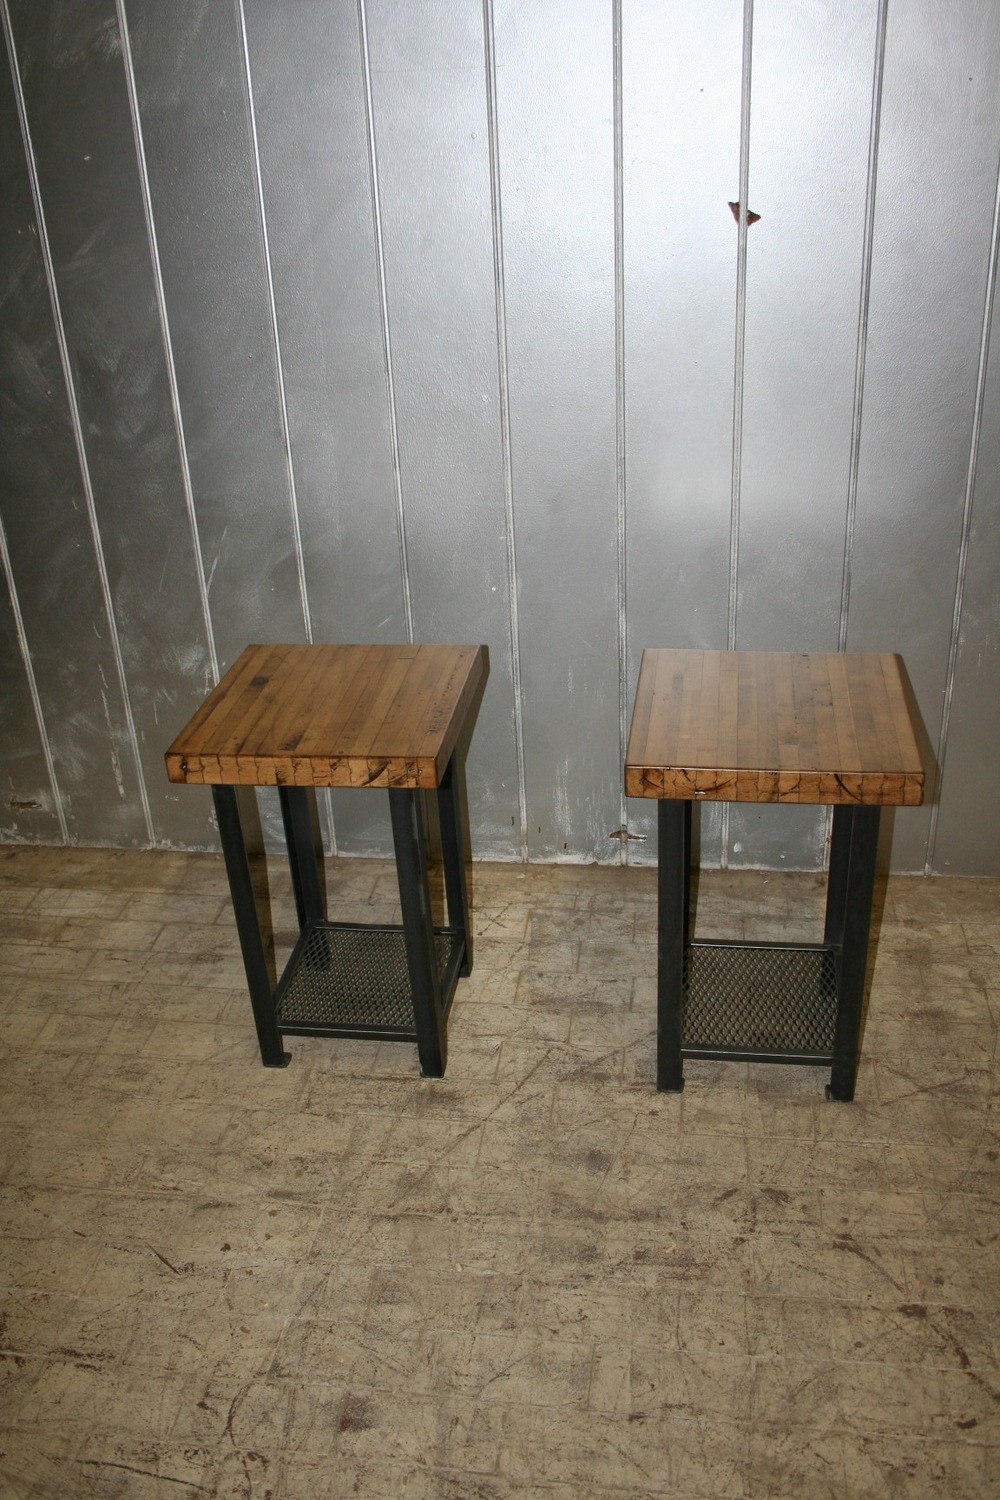 Maple Bowling Alley Night Stands $225 each